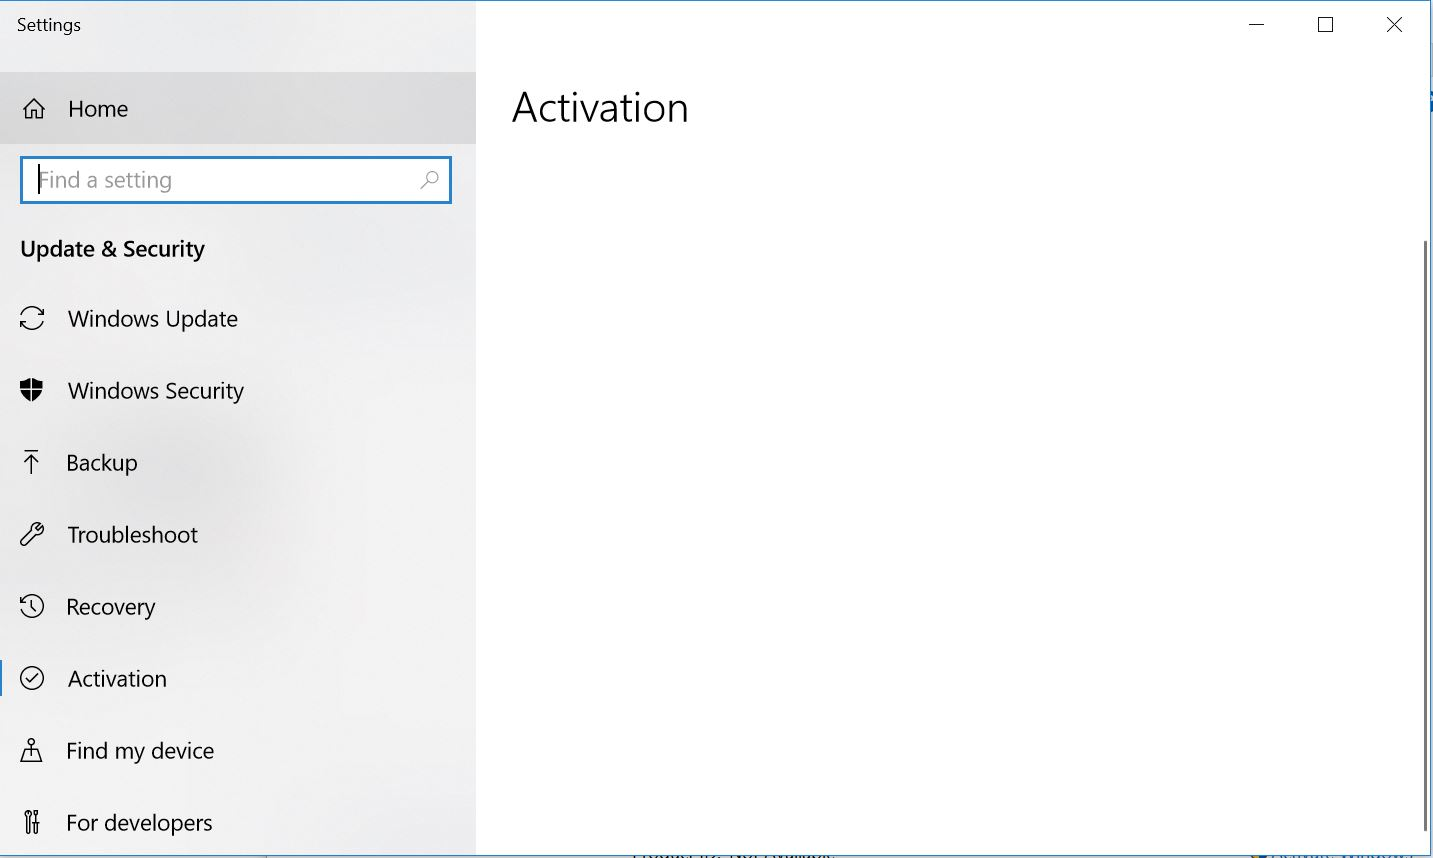 windows 7 not activated after update